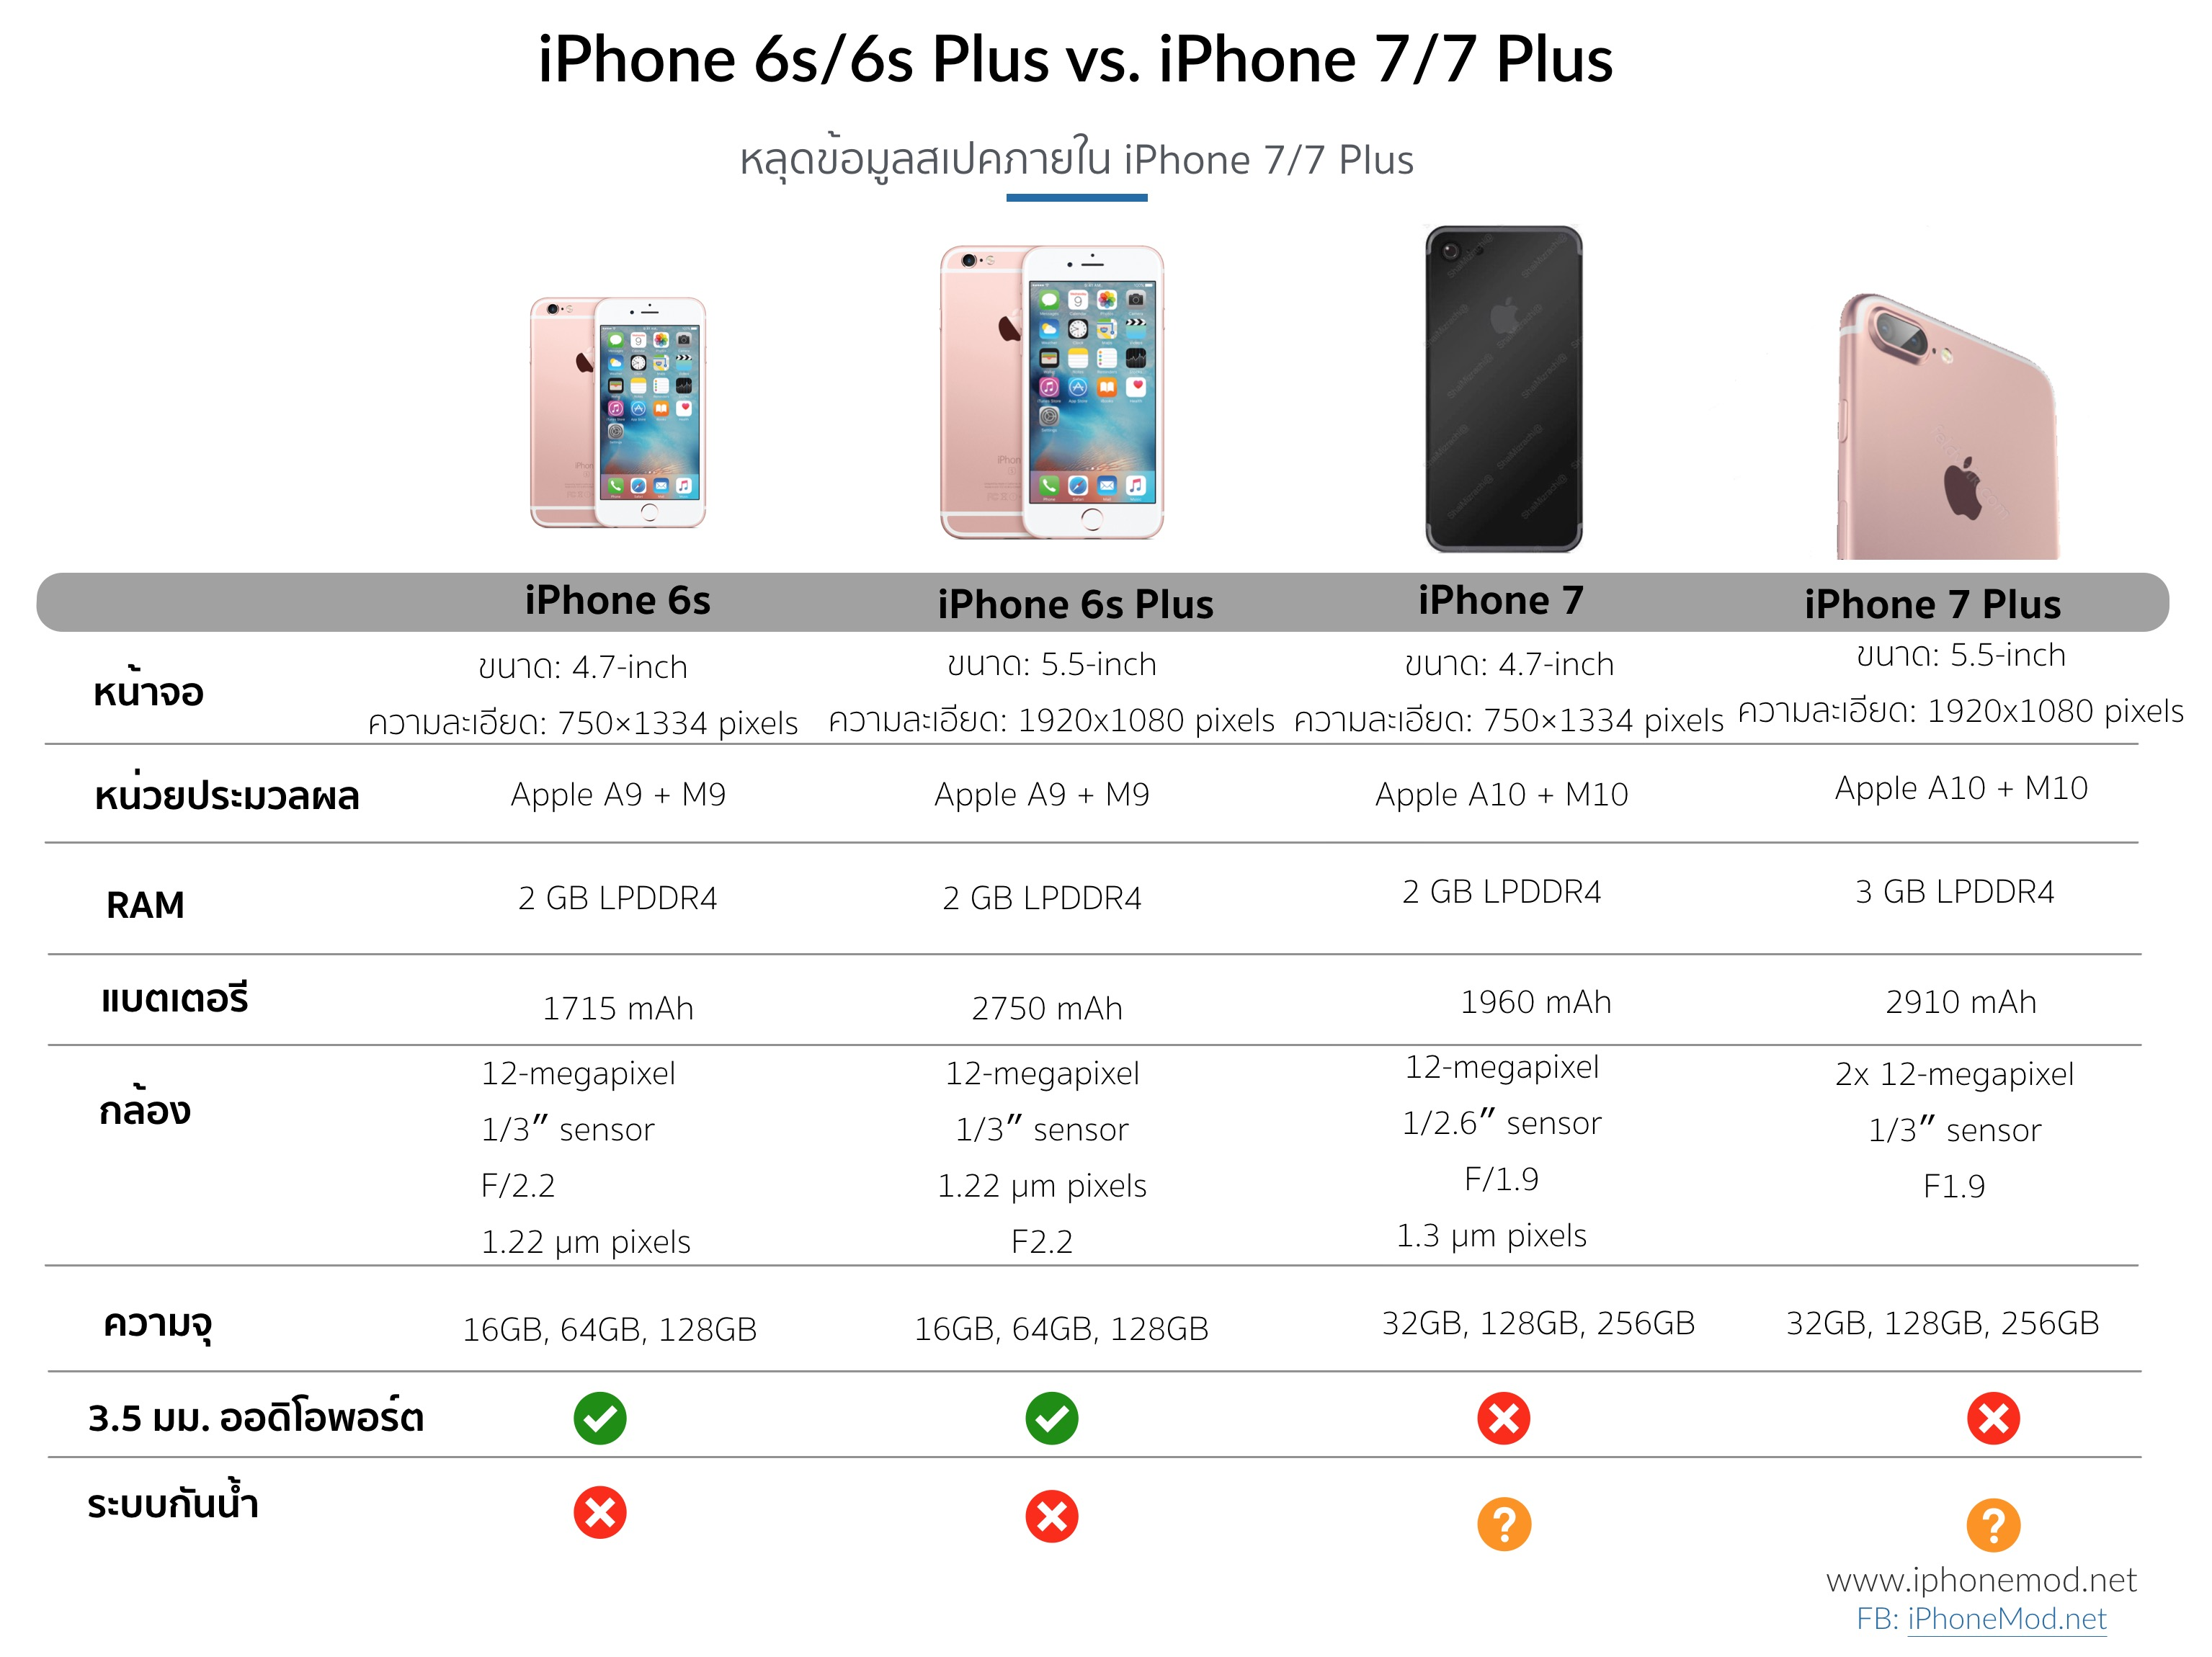 leak iphone 7 vs iphone 6s spec